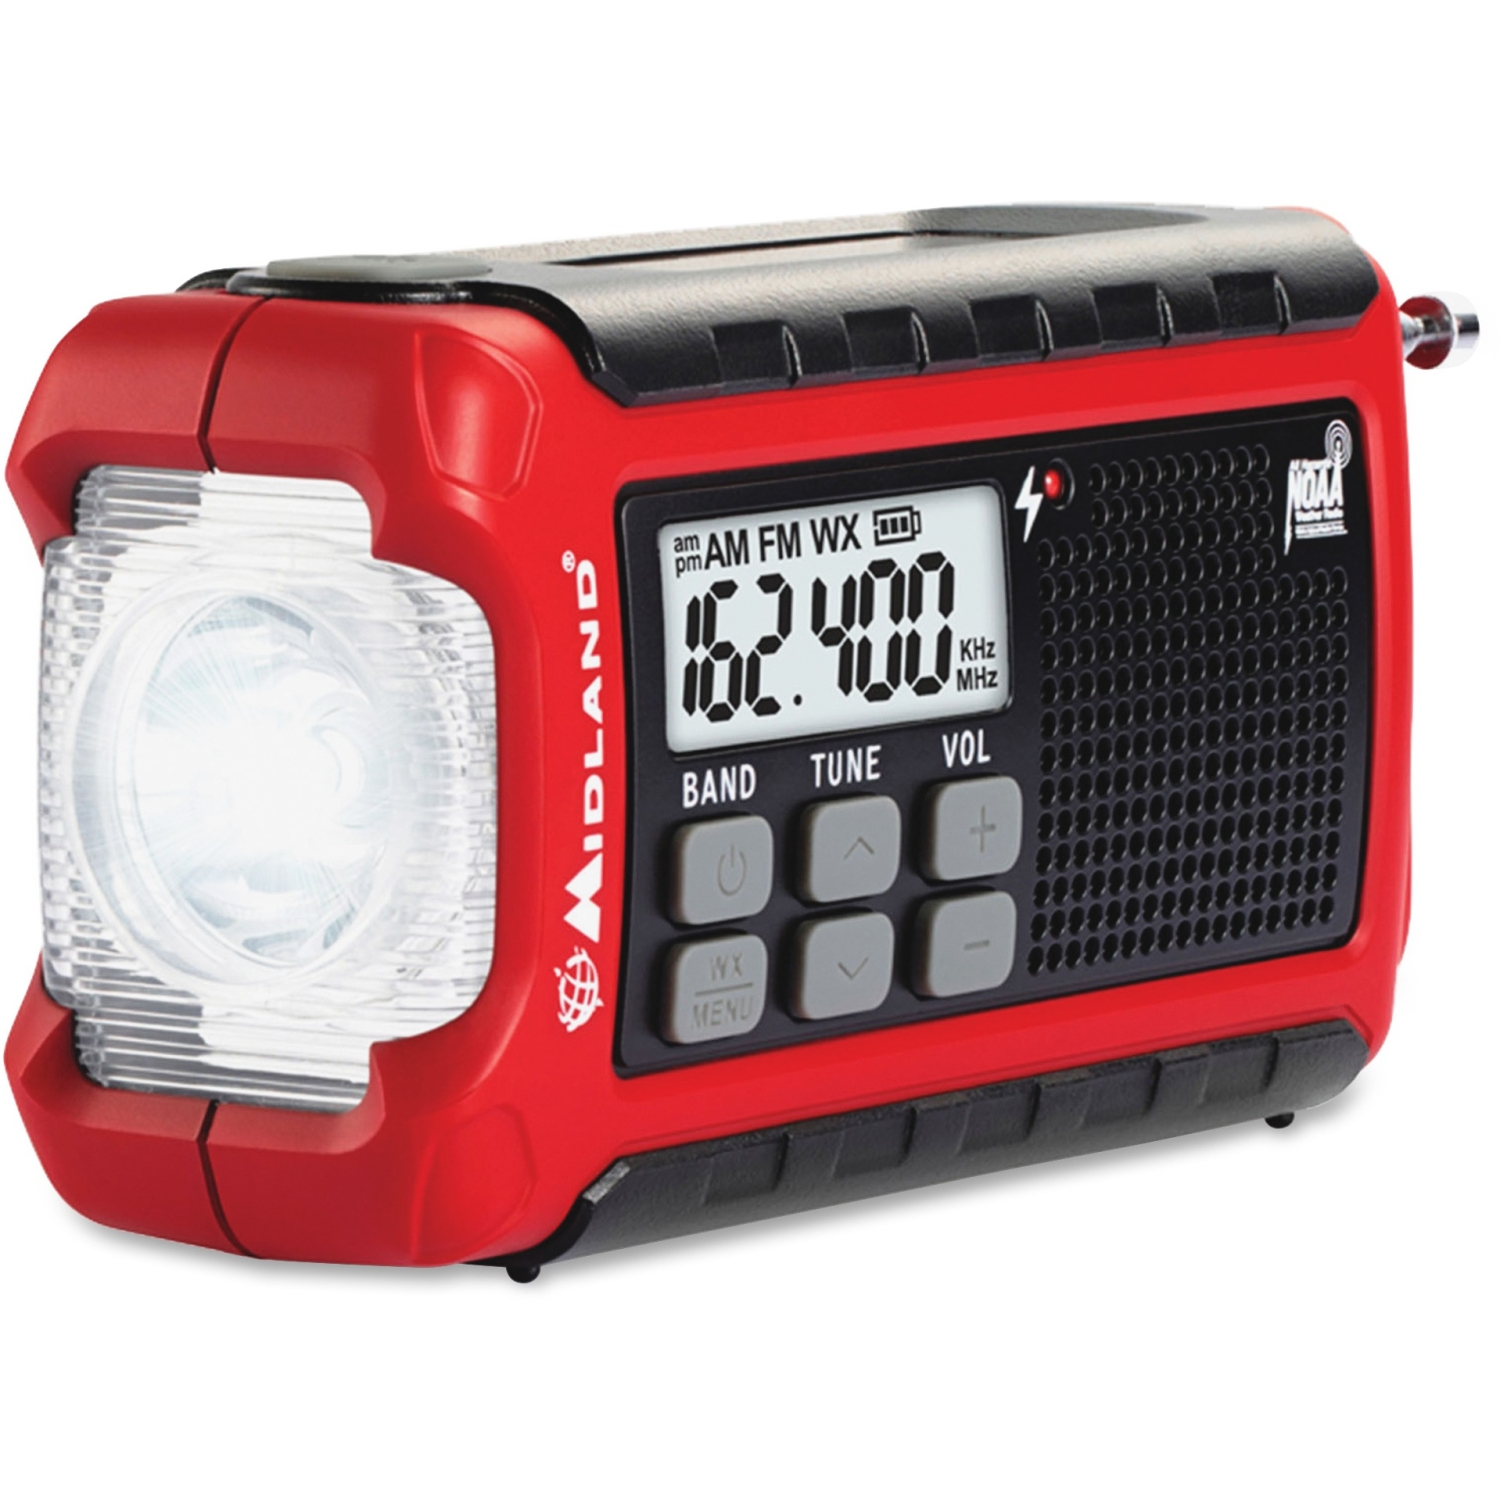 Midland Er200 Emergency Dynamo Crank Radio With Am fm & Weather Alert by Midland